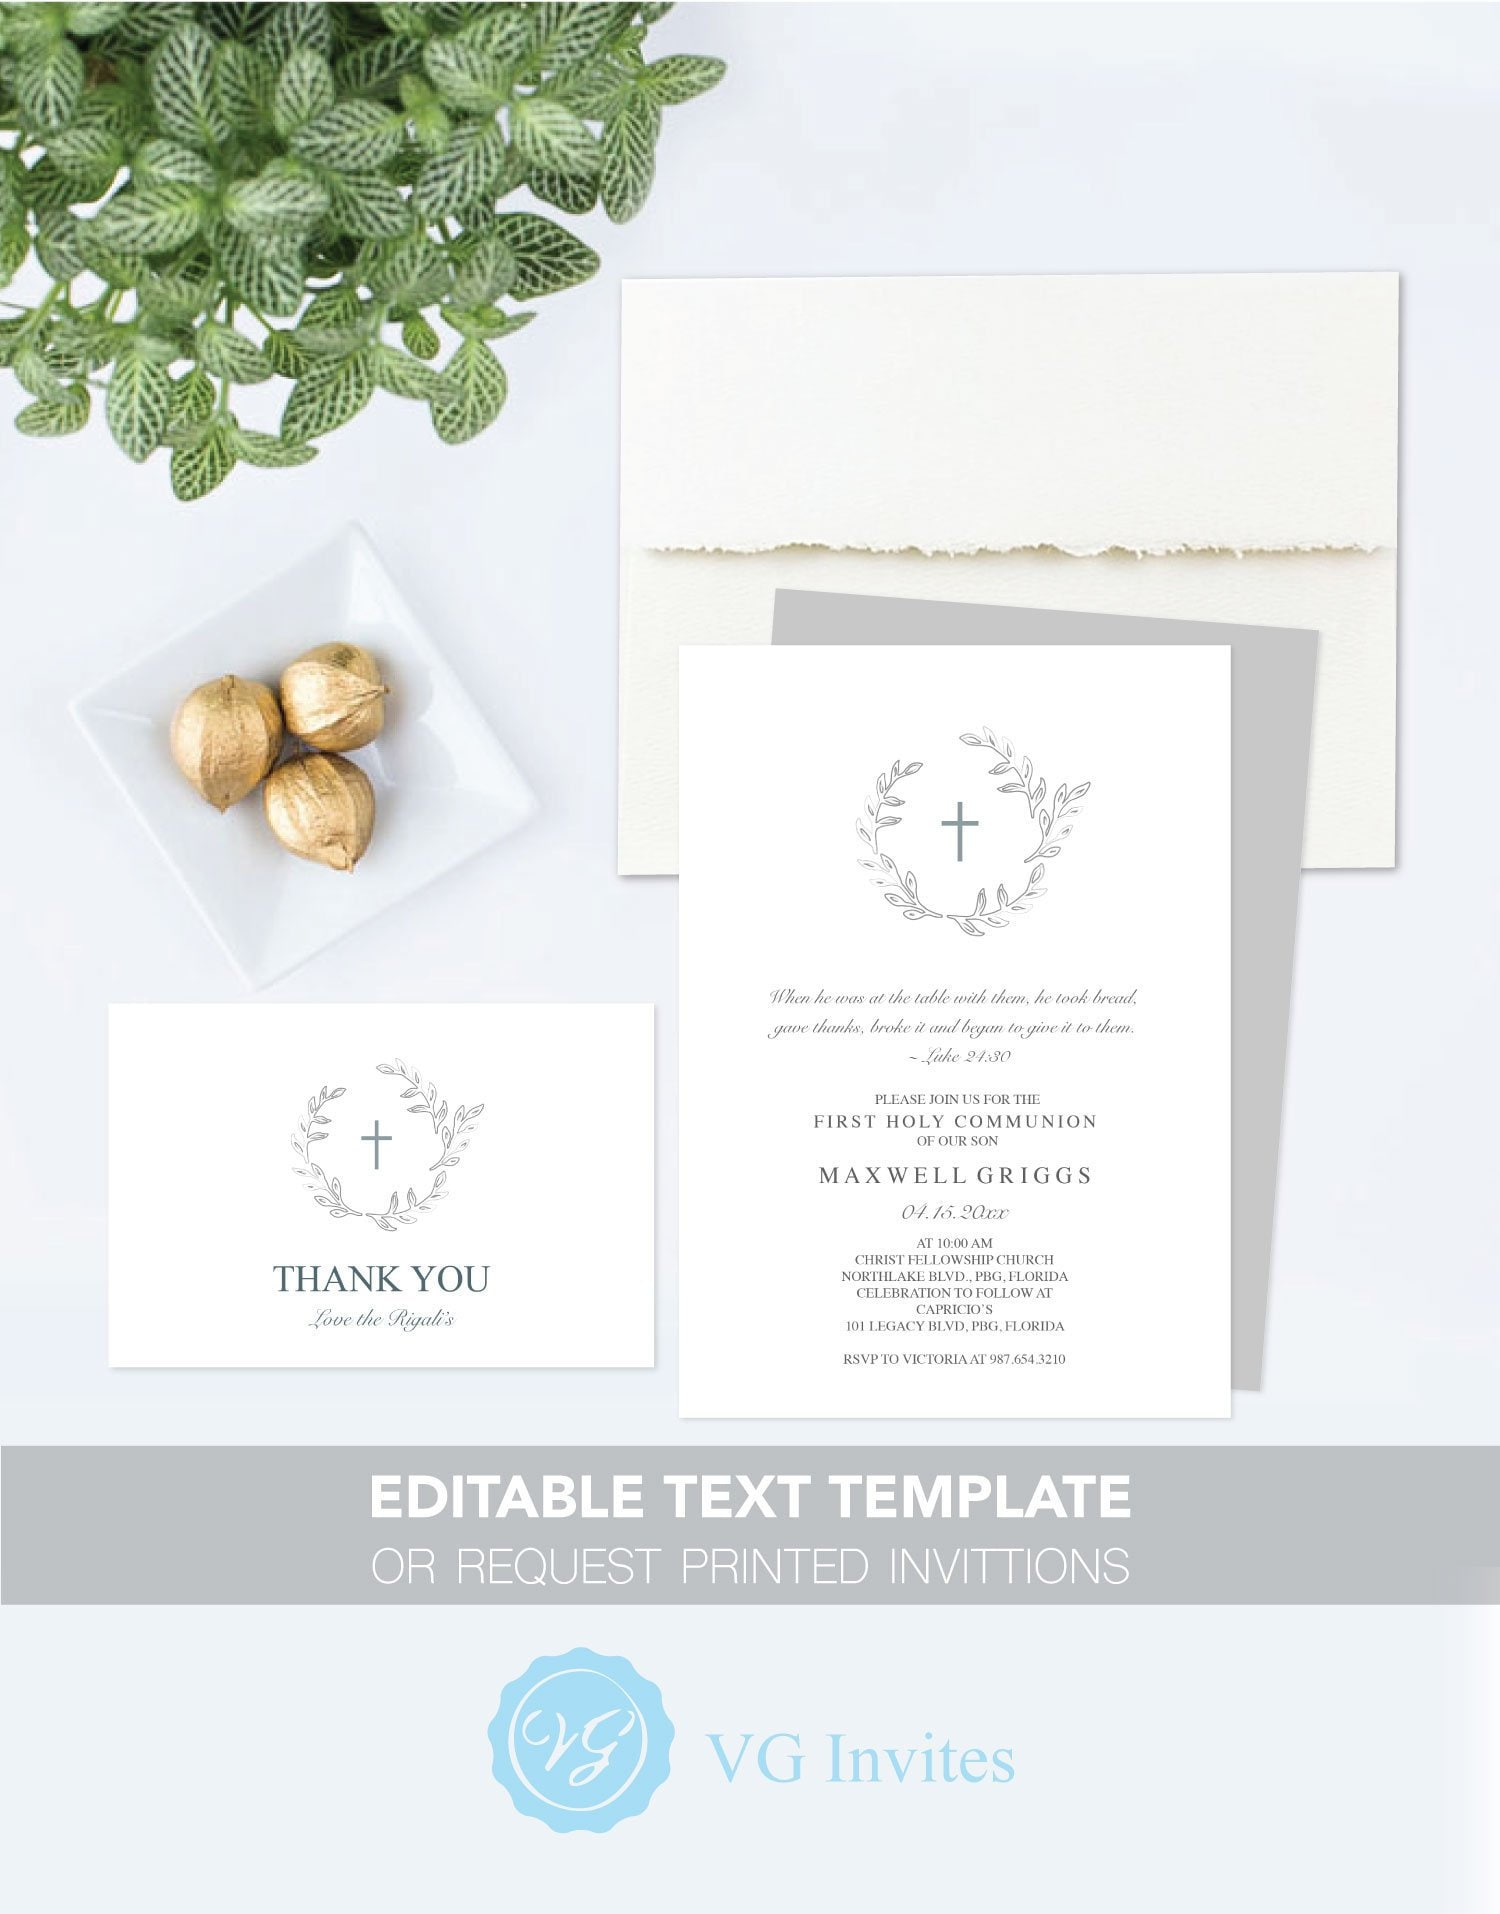 photograph relating to First Communion Invitations Free Printable called Initially COMMUNION INVITATION with No cost Printable Thank On your own Card Template, 5x7 Invites for Boy or Woman Gender Impartial, Progressive Leaf Layout